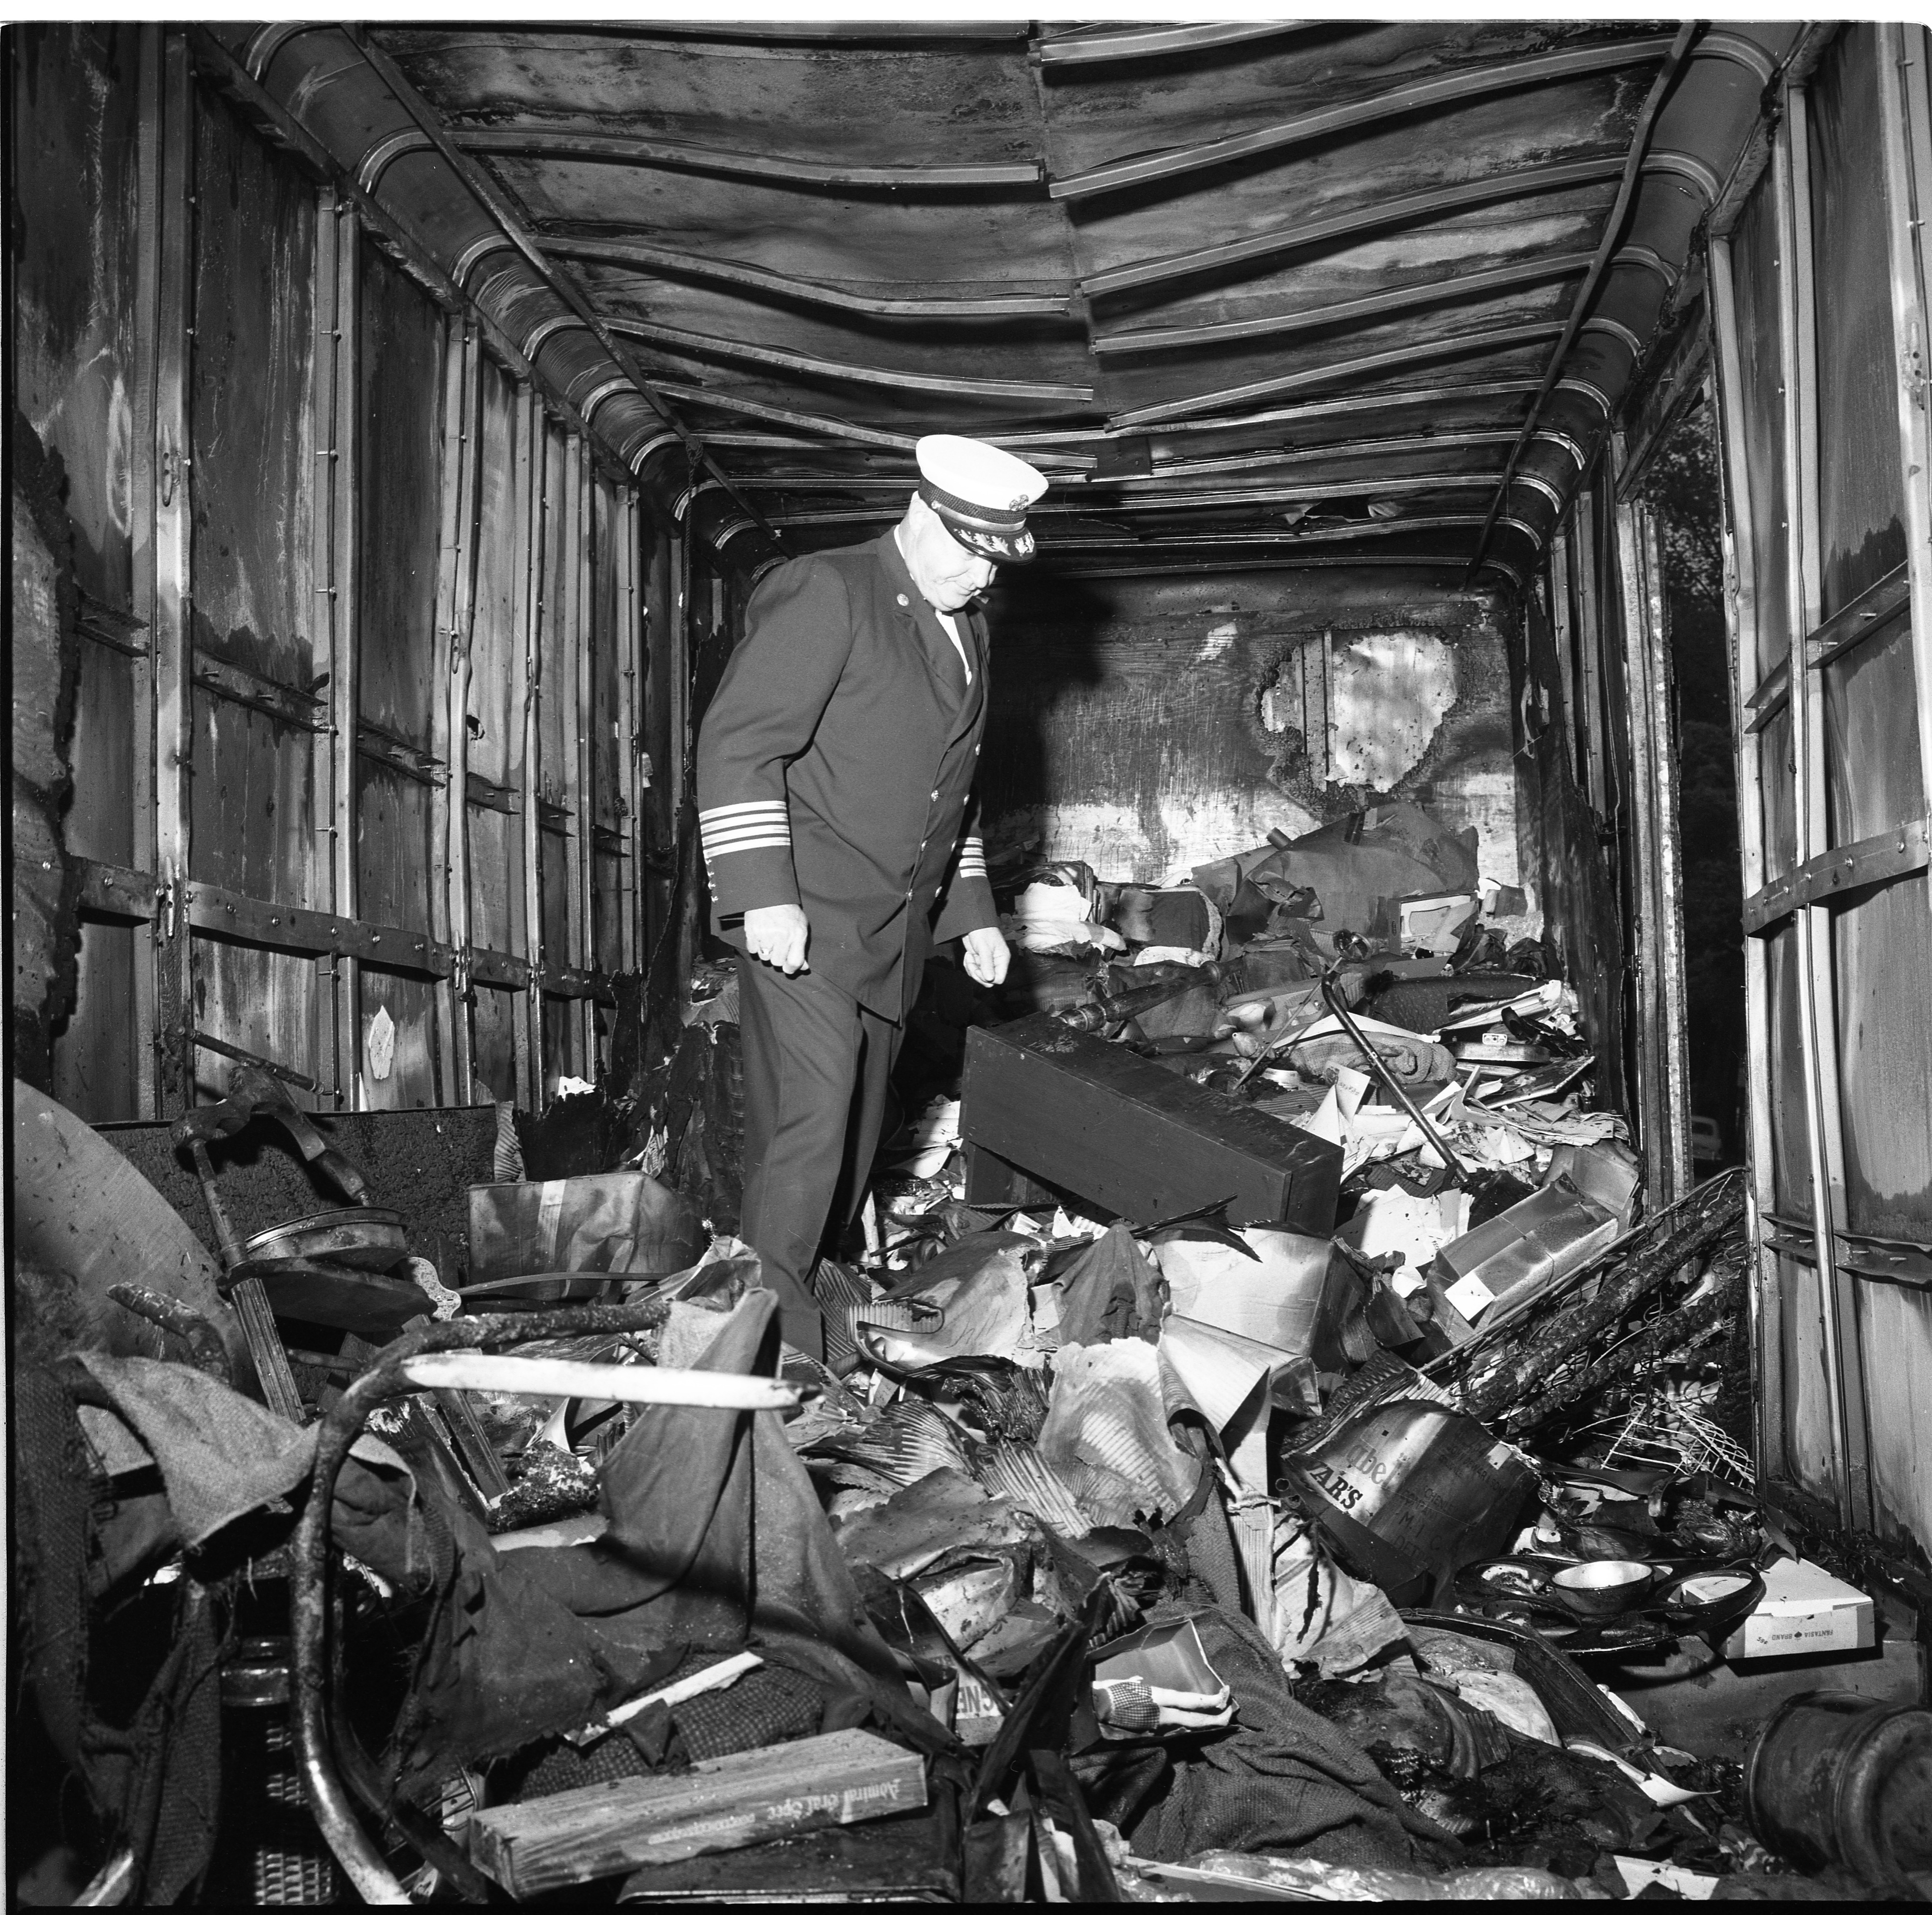 Fire Chief Arthur Stauch Inspects Interior Remnants Of Allied Moving Van That Caught Fire On N. Ashley, September 1966 image